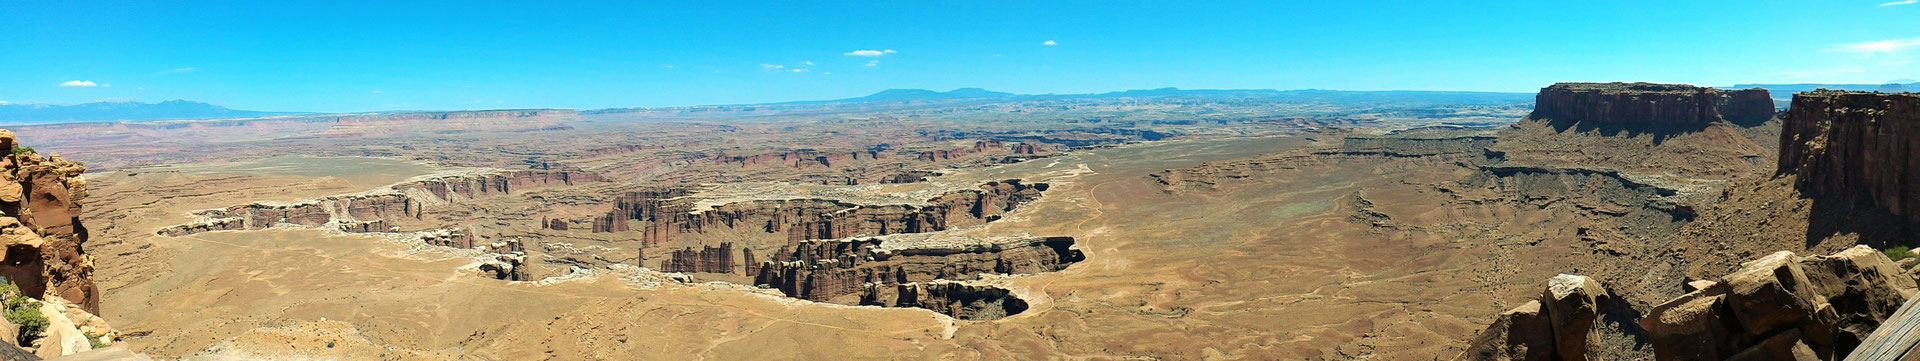 GRAND VIEWPOINT OVERLOOK ISLAND IN THE SKY CANYONLANDS NP UTAH